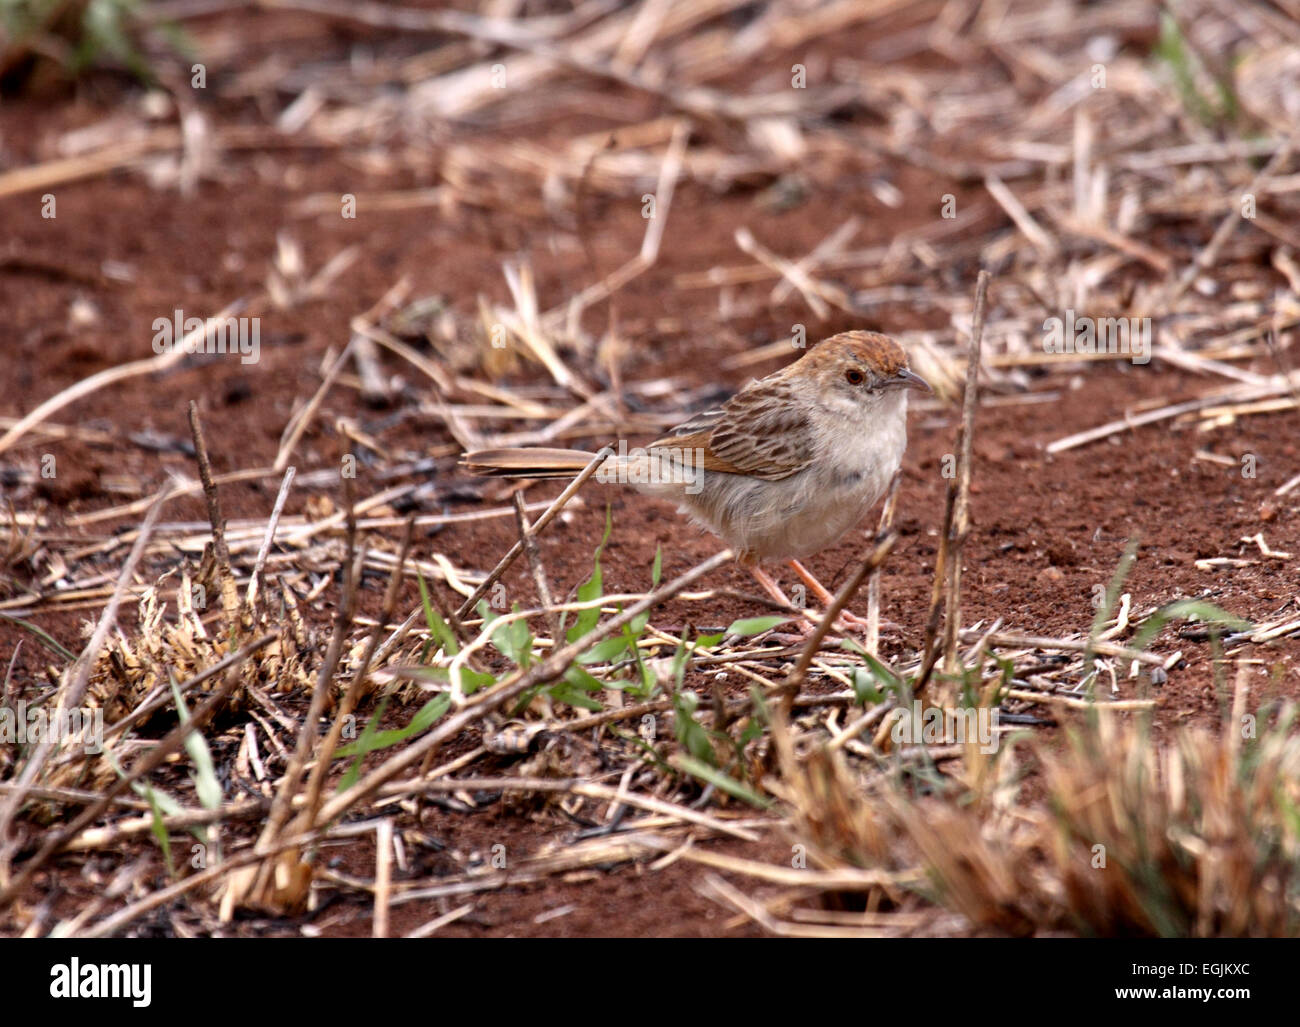 Rattling cisticola on bare ground amongst scrub in South Africa - Stock Image